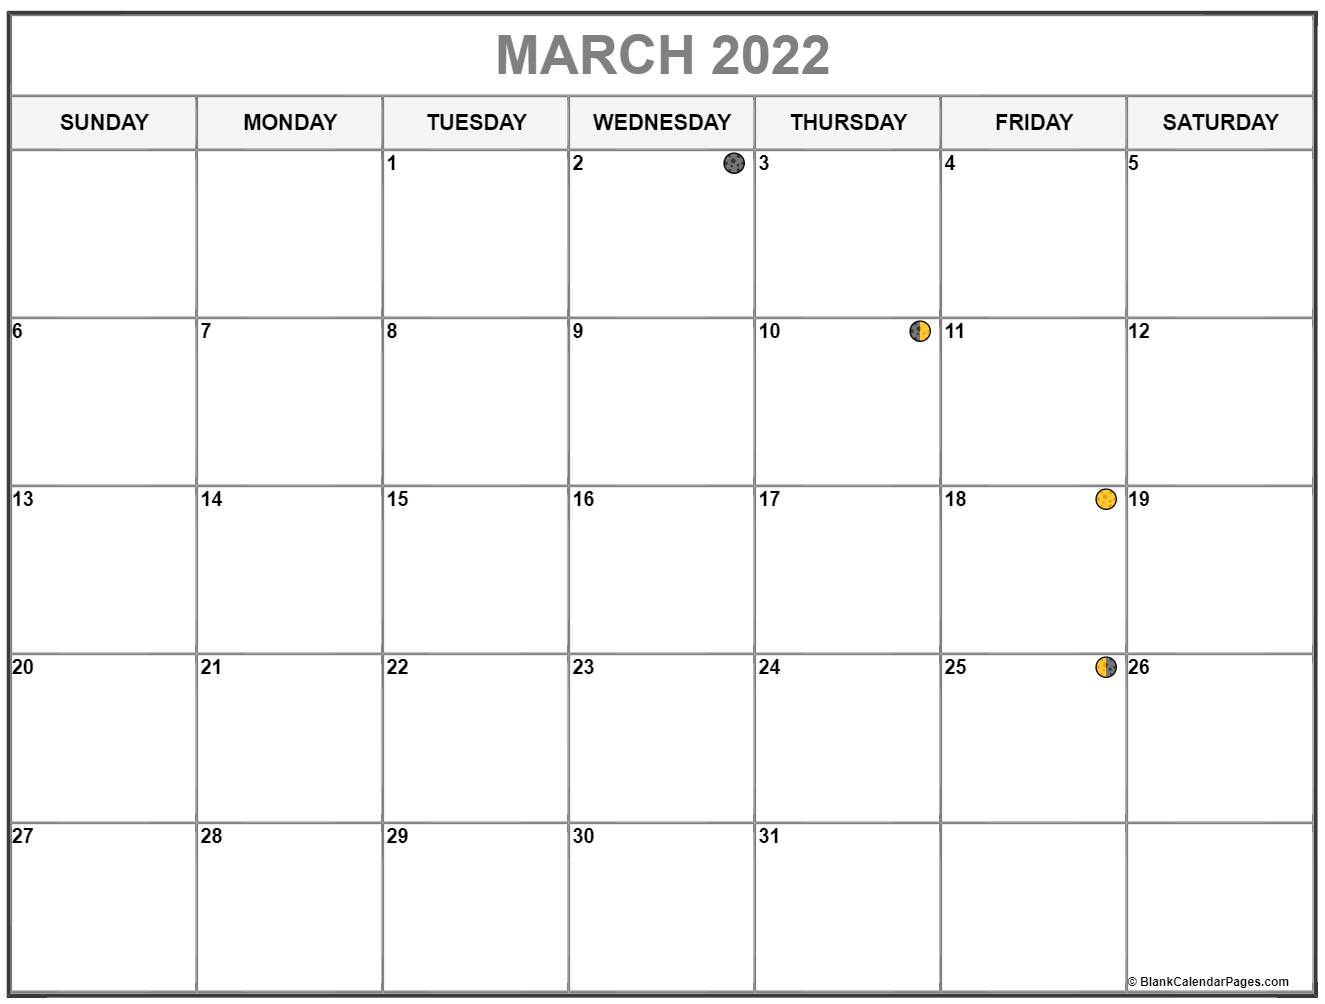 March 2022 lunar calendar. Moon phases with USA holidays